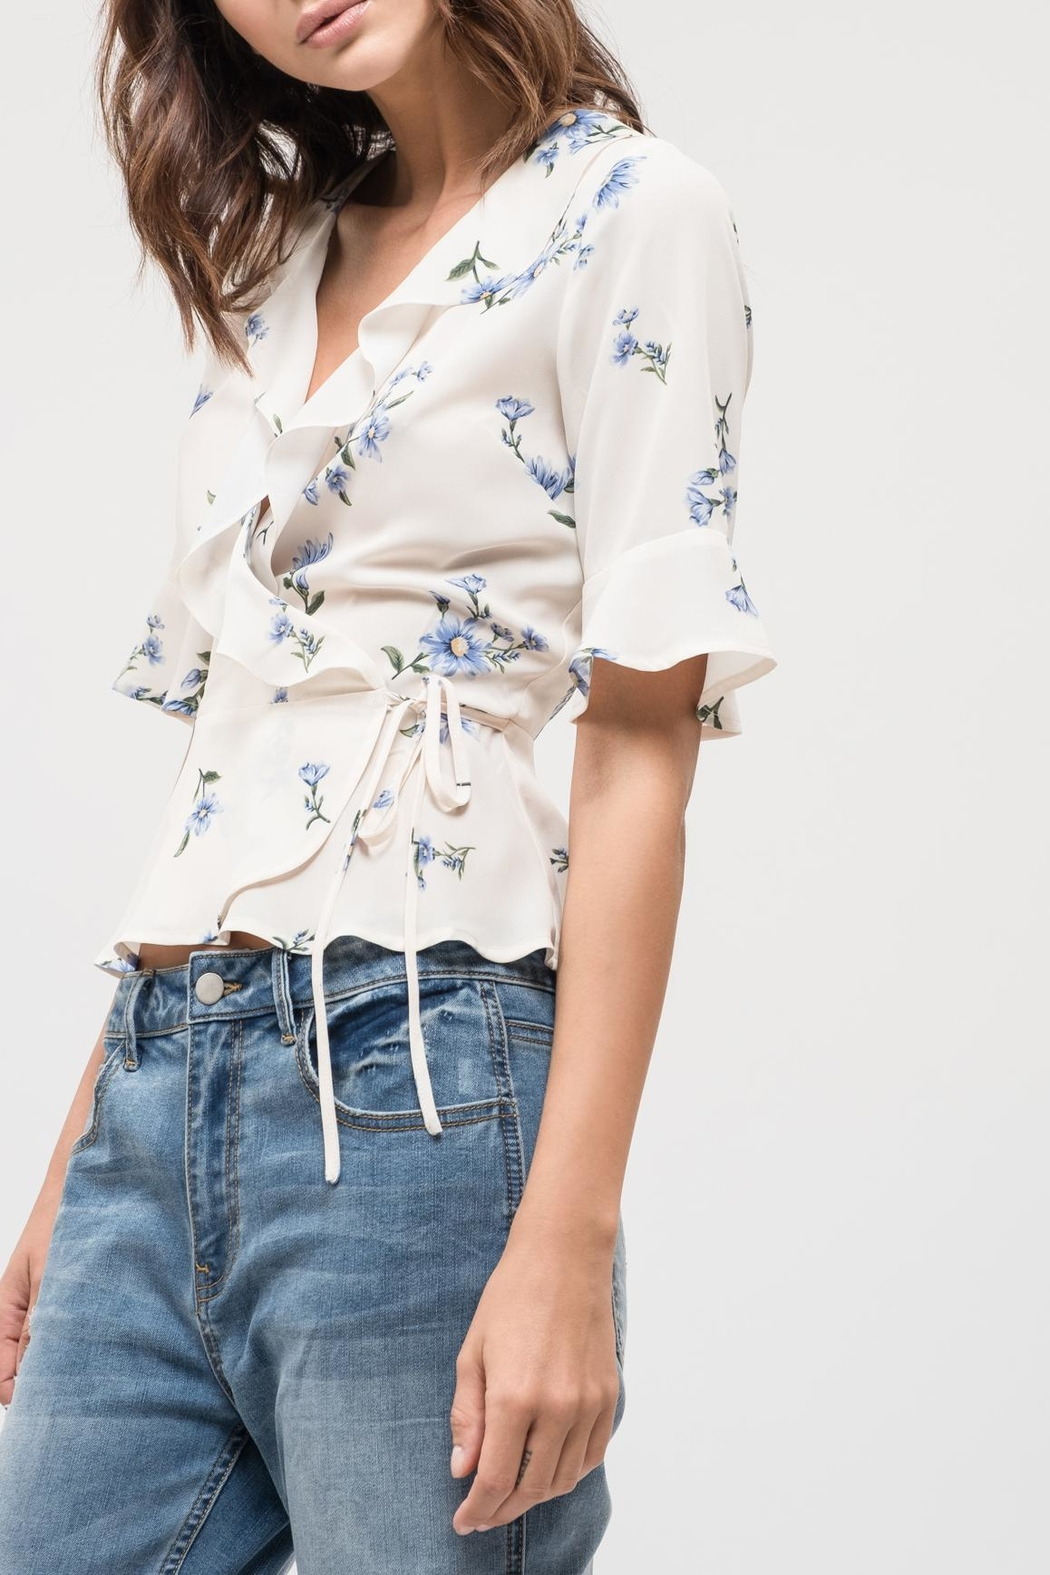 Blu Pepper Floral Wrap Top - Side Cropped Image